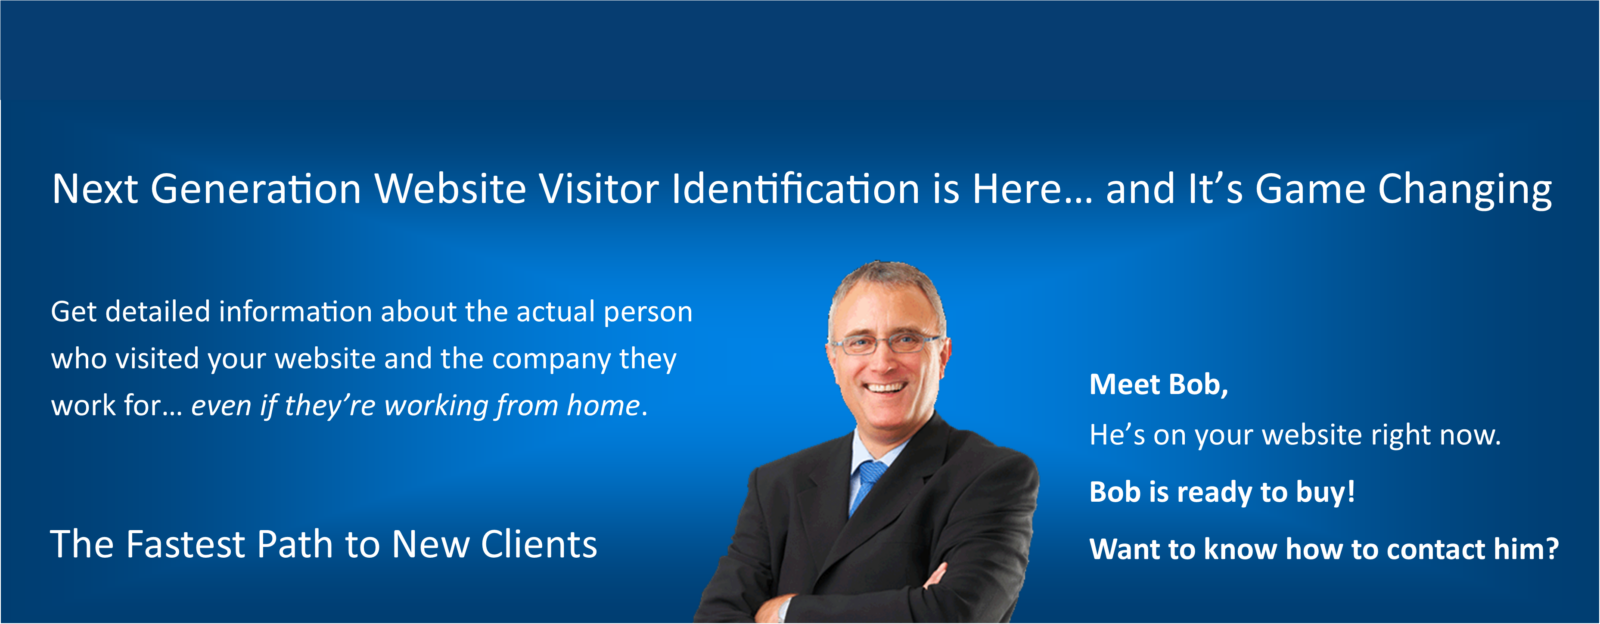 Next Generation Website Visitor Identification is Here… and It's Game Changing